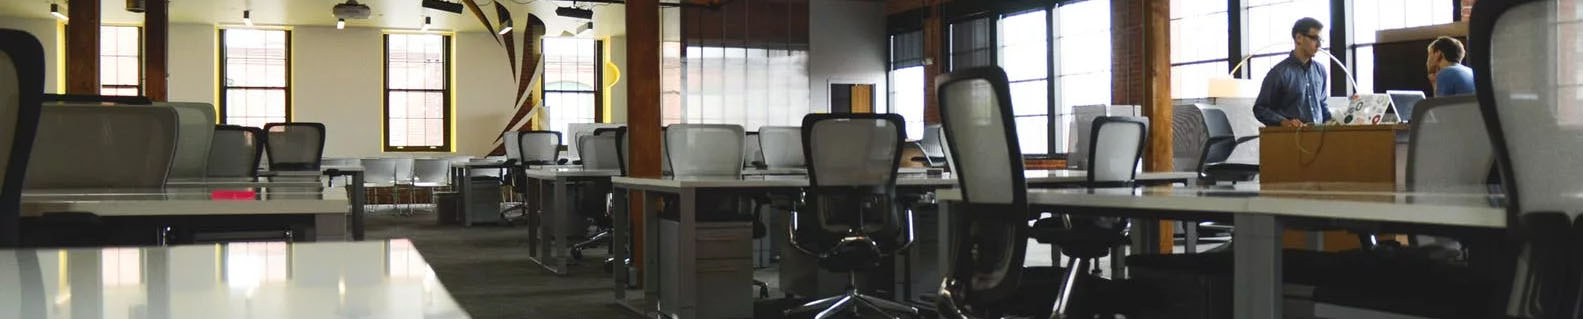 Commercial Office Space For Rent In Nehru Place Delhi Officespacenehruplace Com